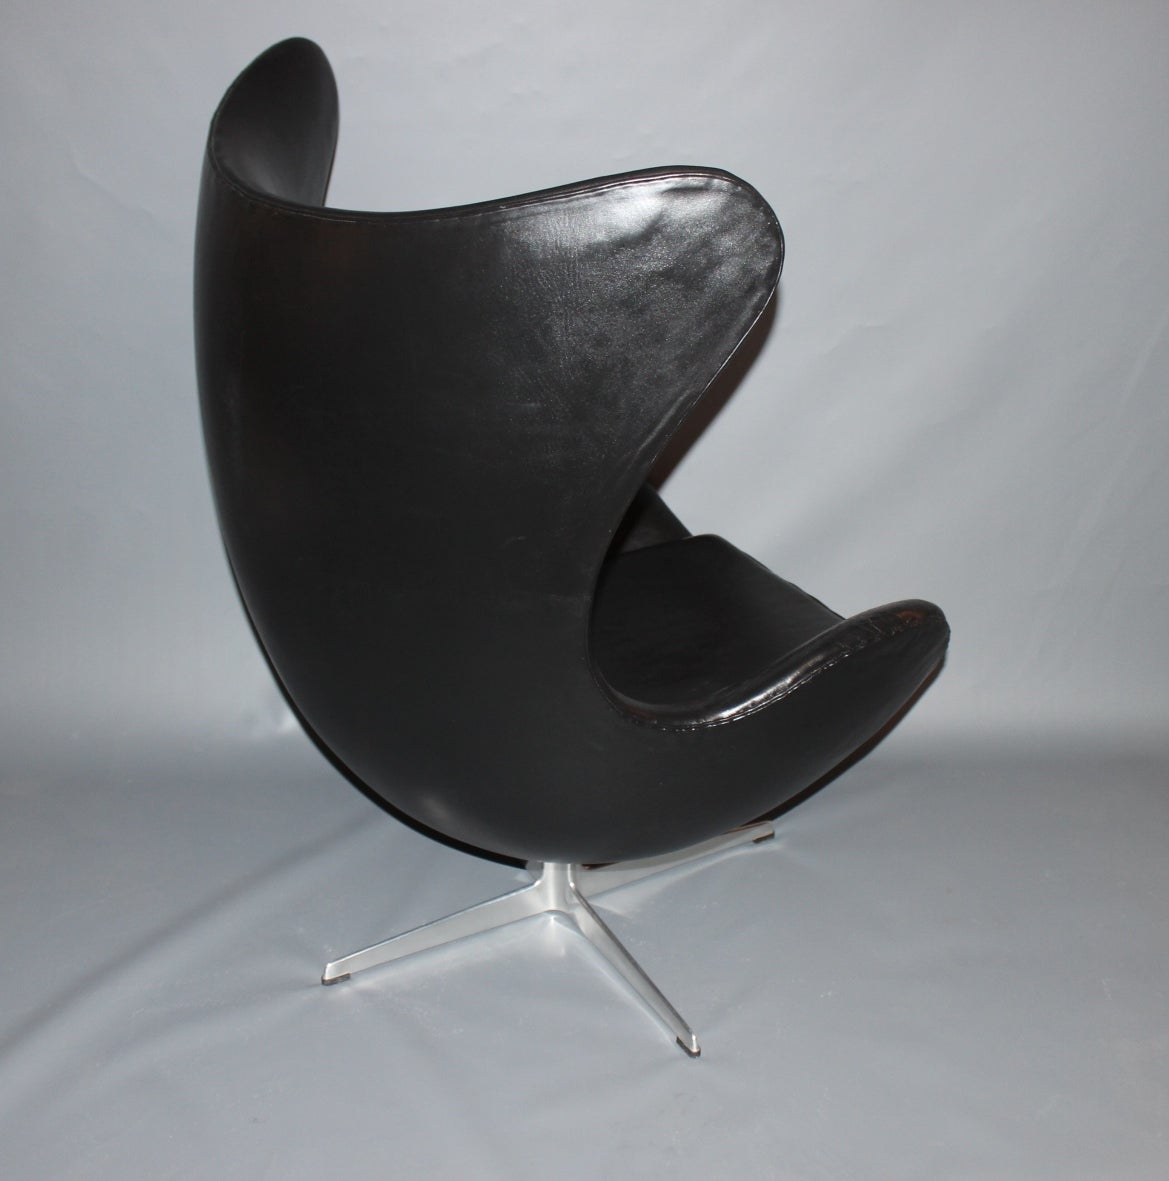 arne jacobsen egg chair with original upholstery by fritz hansen c 1963 for sale at 1stdibs. Black Bedroom Furniture Sets. Home Design Ideas